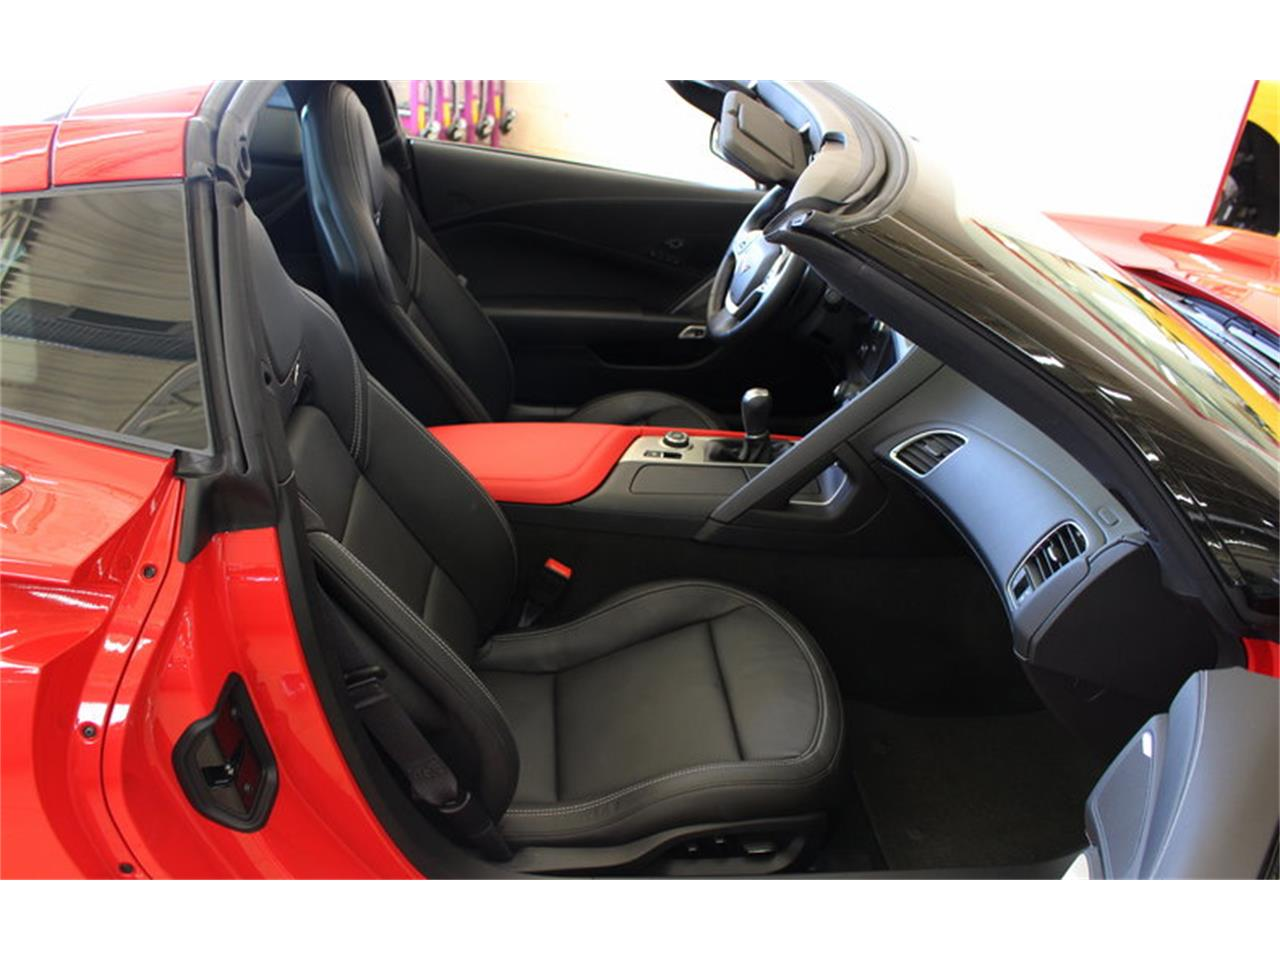 Large Picture of 2014 Chevrolet Corvette located in Rockville Maryland - $49,990.00 Offered by Flemings Ultimate Garage - MGRV